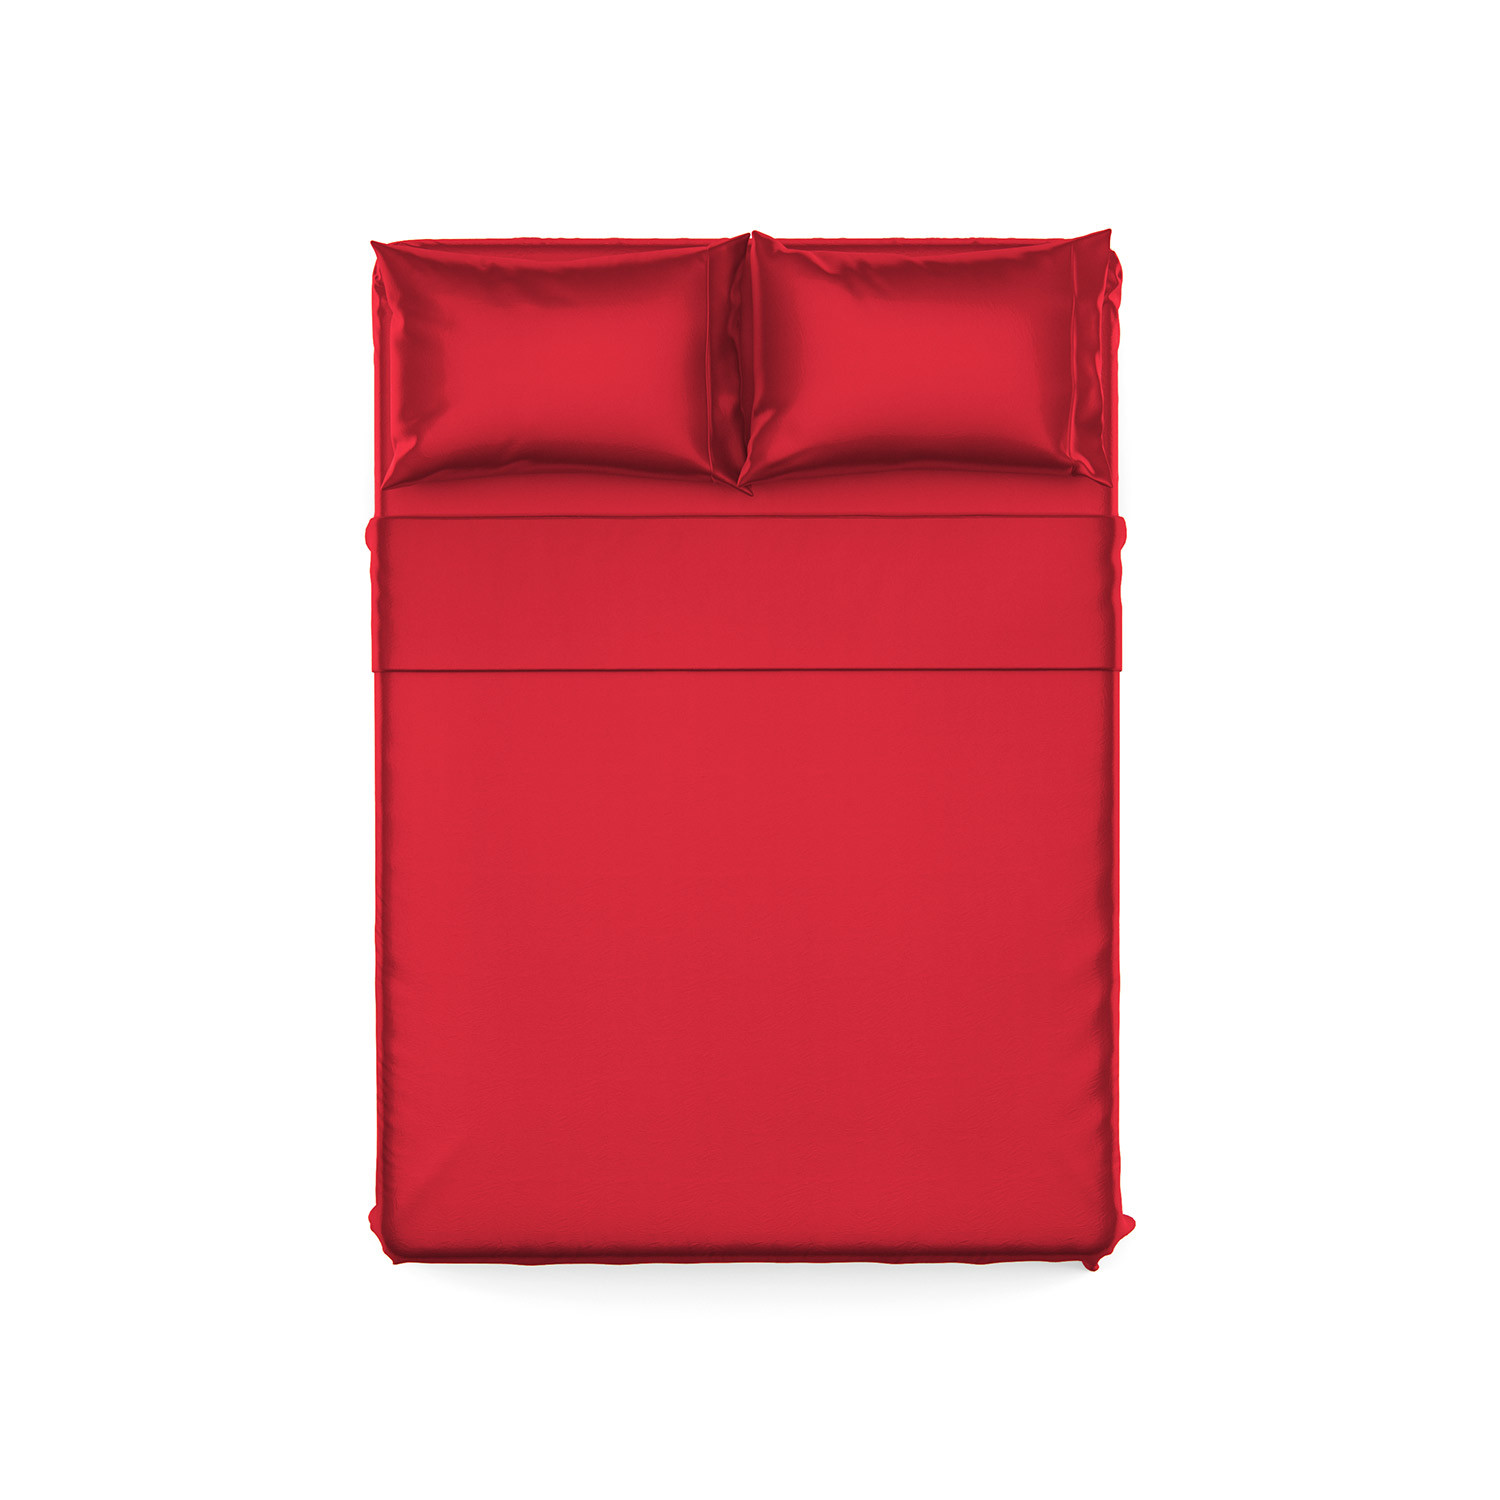 Luxury Bamboo Sheets // Brick Red (Queen) - Bamboo Sheets